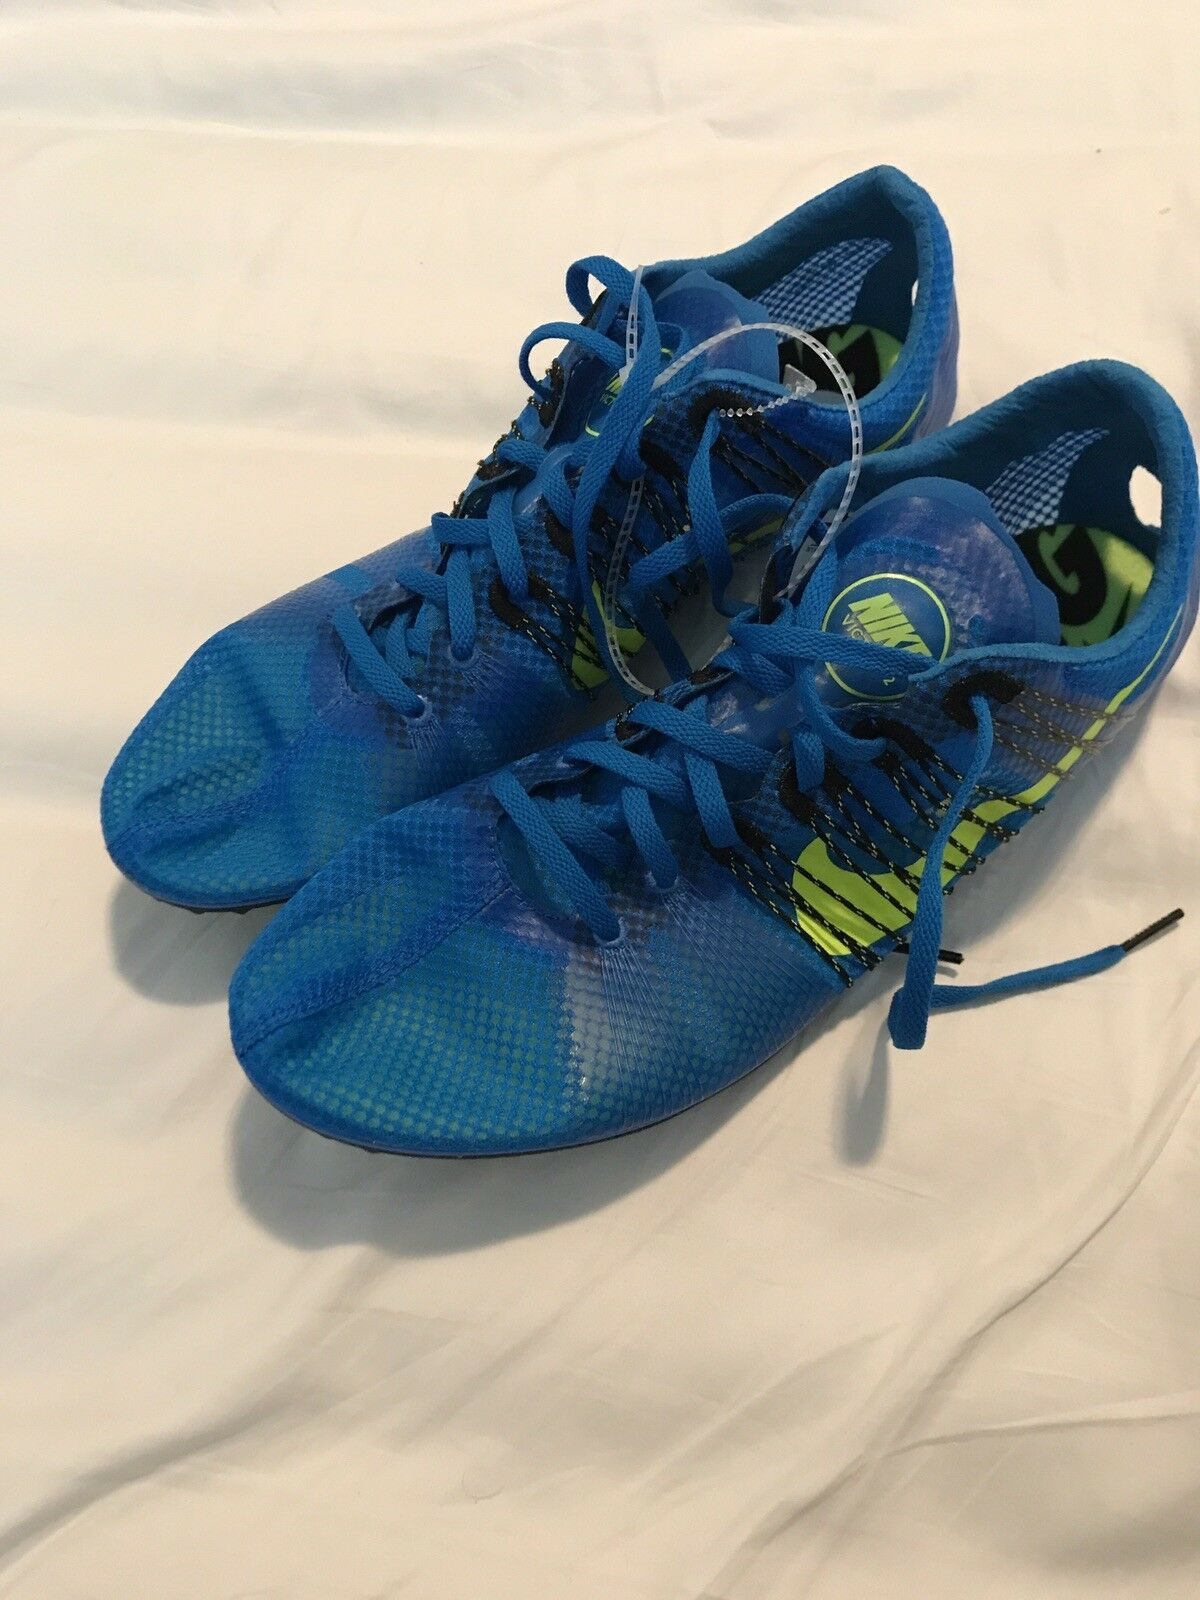 NIKE ZOOM VICTORY 2 DISTANCE RACING TRACK SPIKES LYON BLUE BLACK 555365-470 13M  Great discount